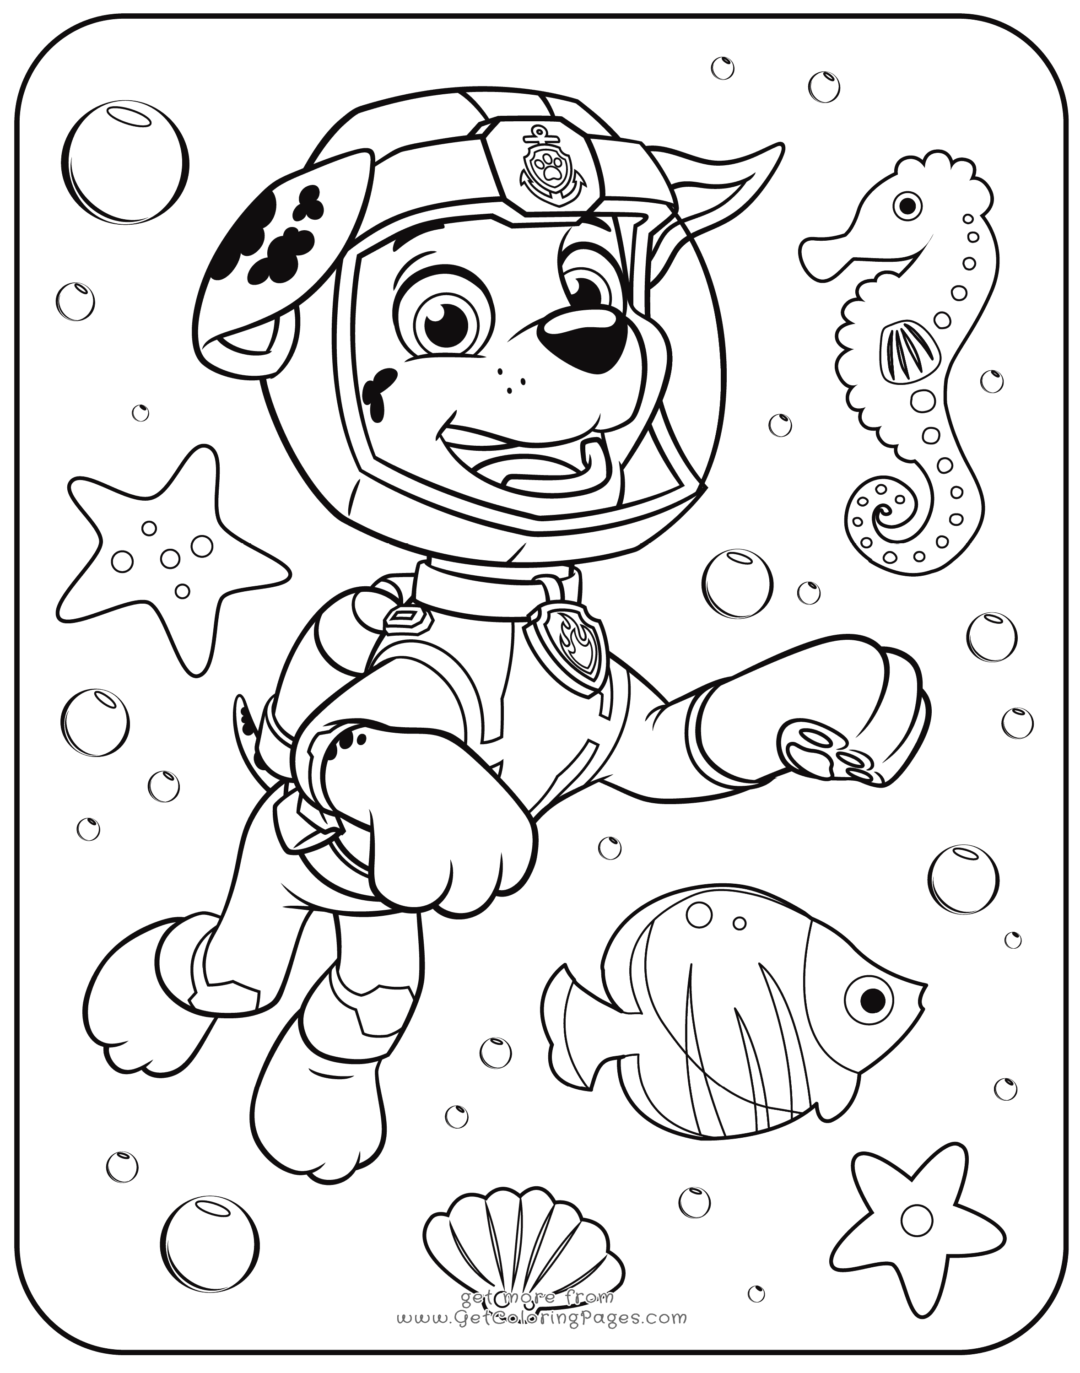 Coloring Rocks Paw Patrol Coloring Pages Paw Patrol Coloring Peppa Pig Coloring Pages